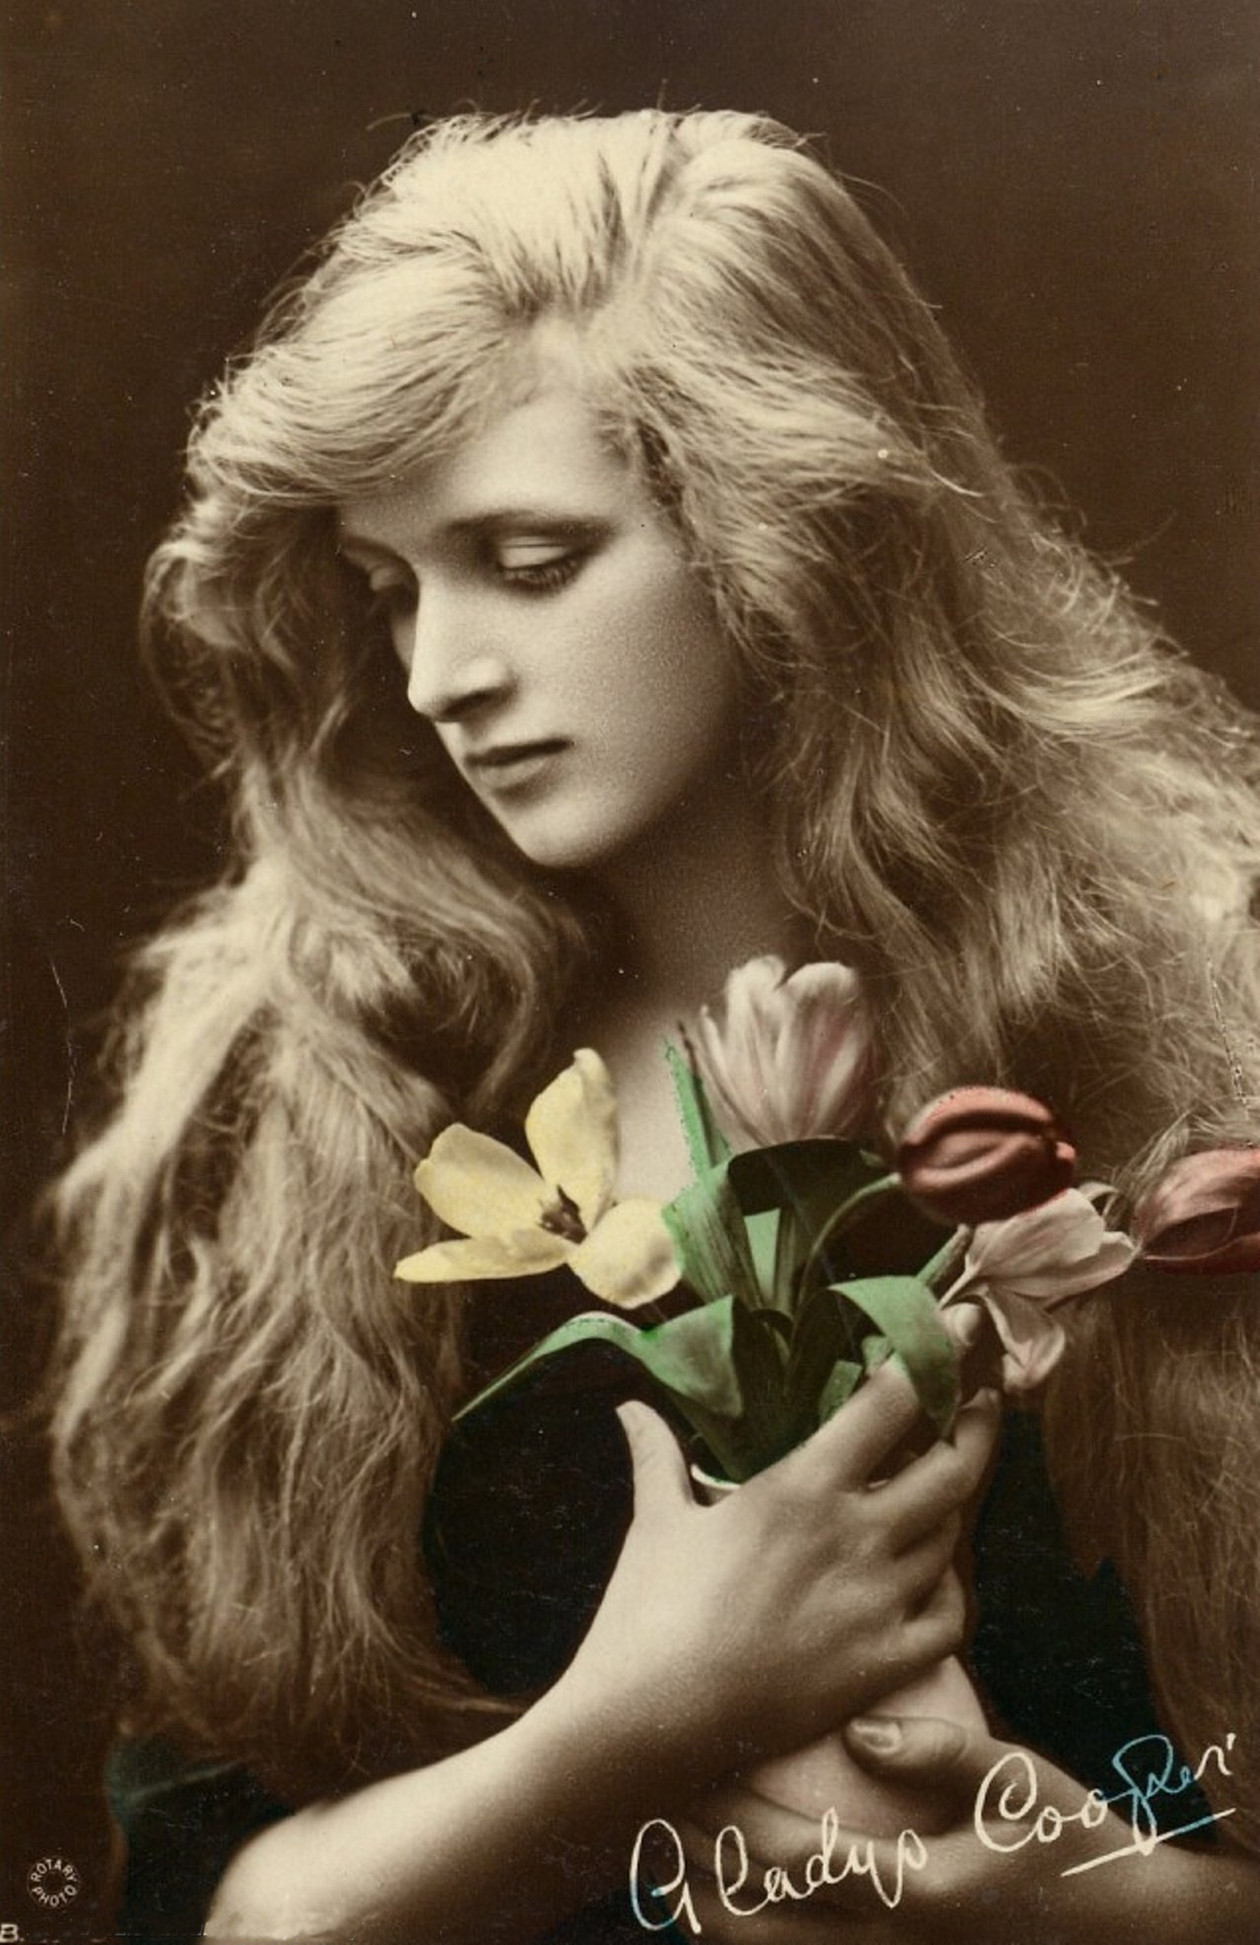 Beauties Of The Past & Classic Hollywood #61 - Gladys Cooper